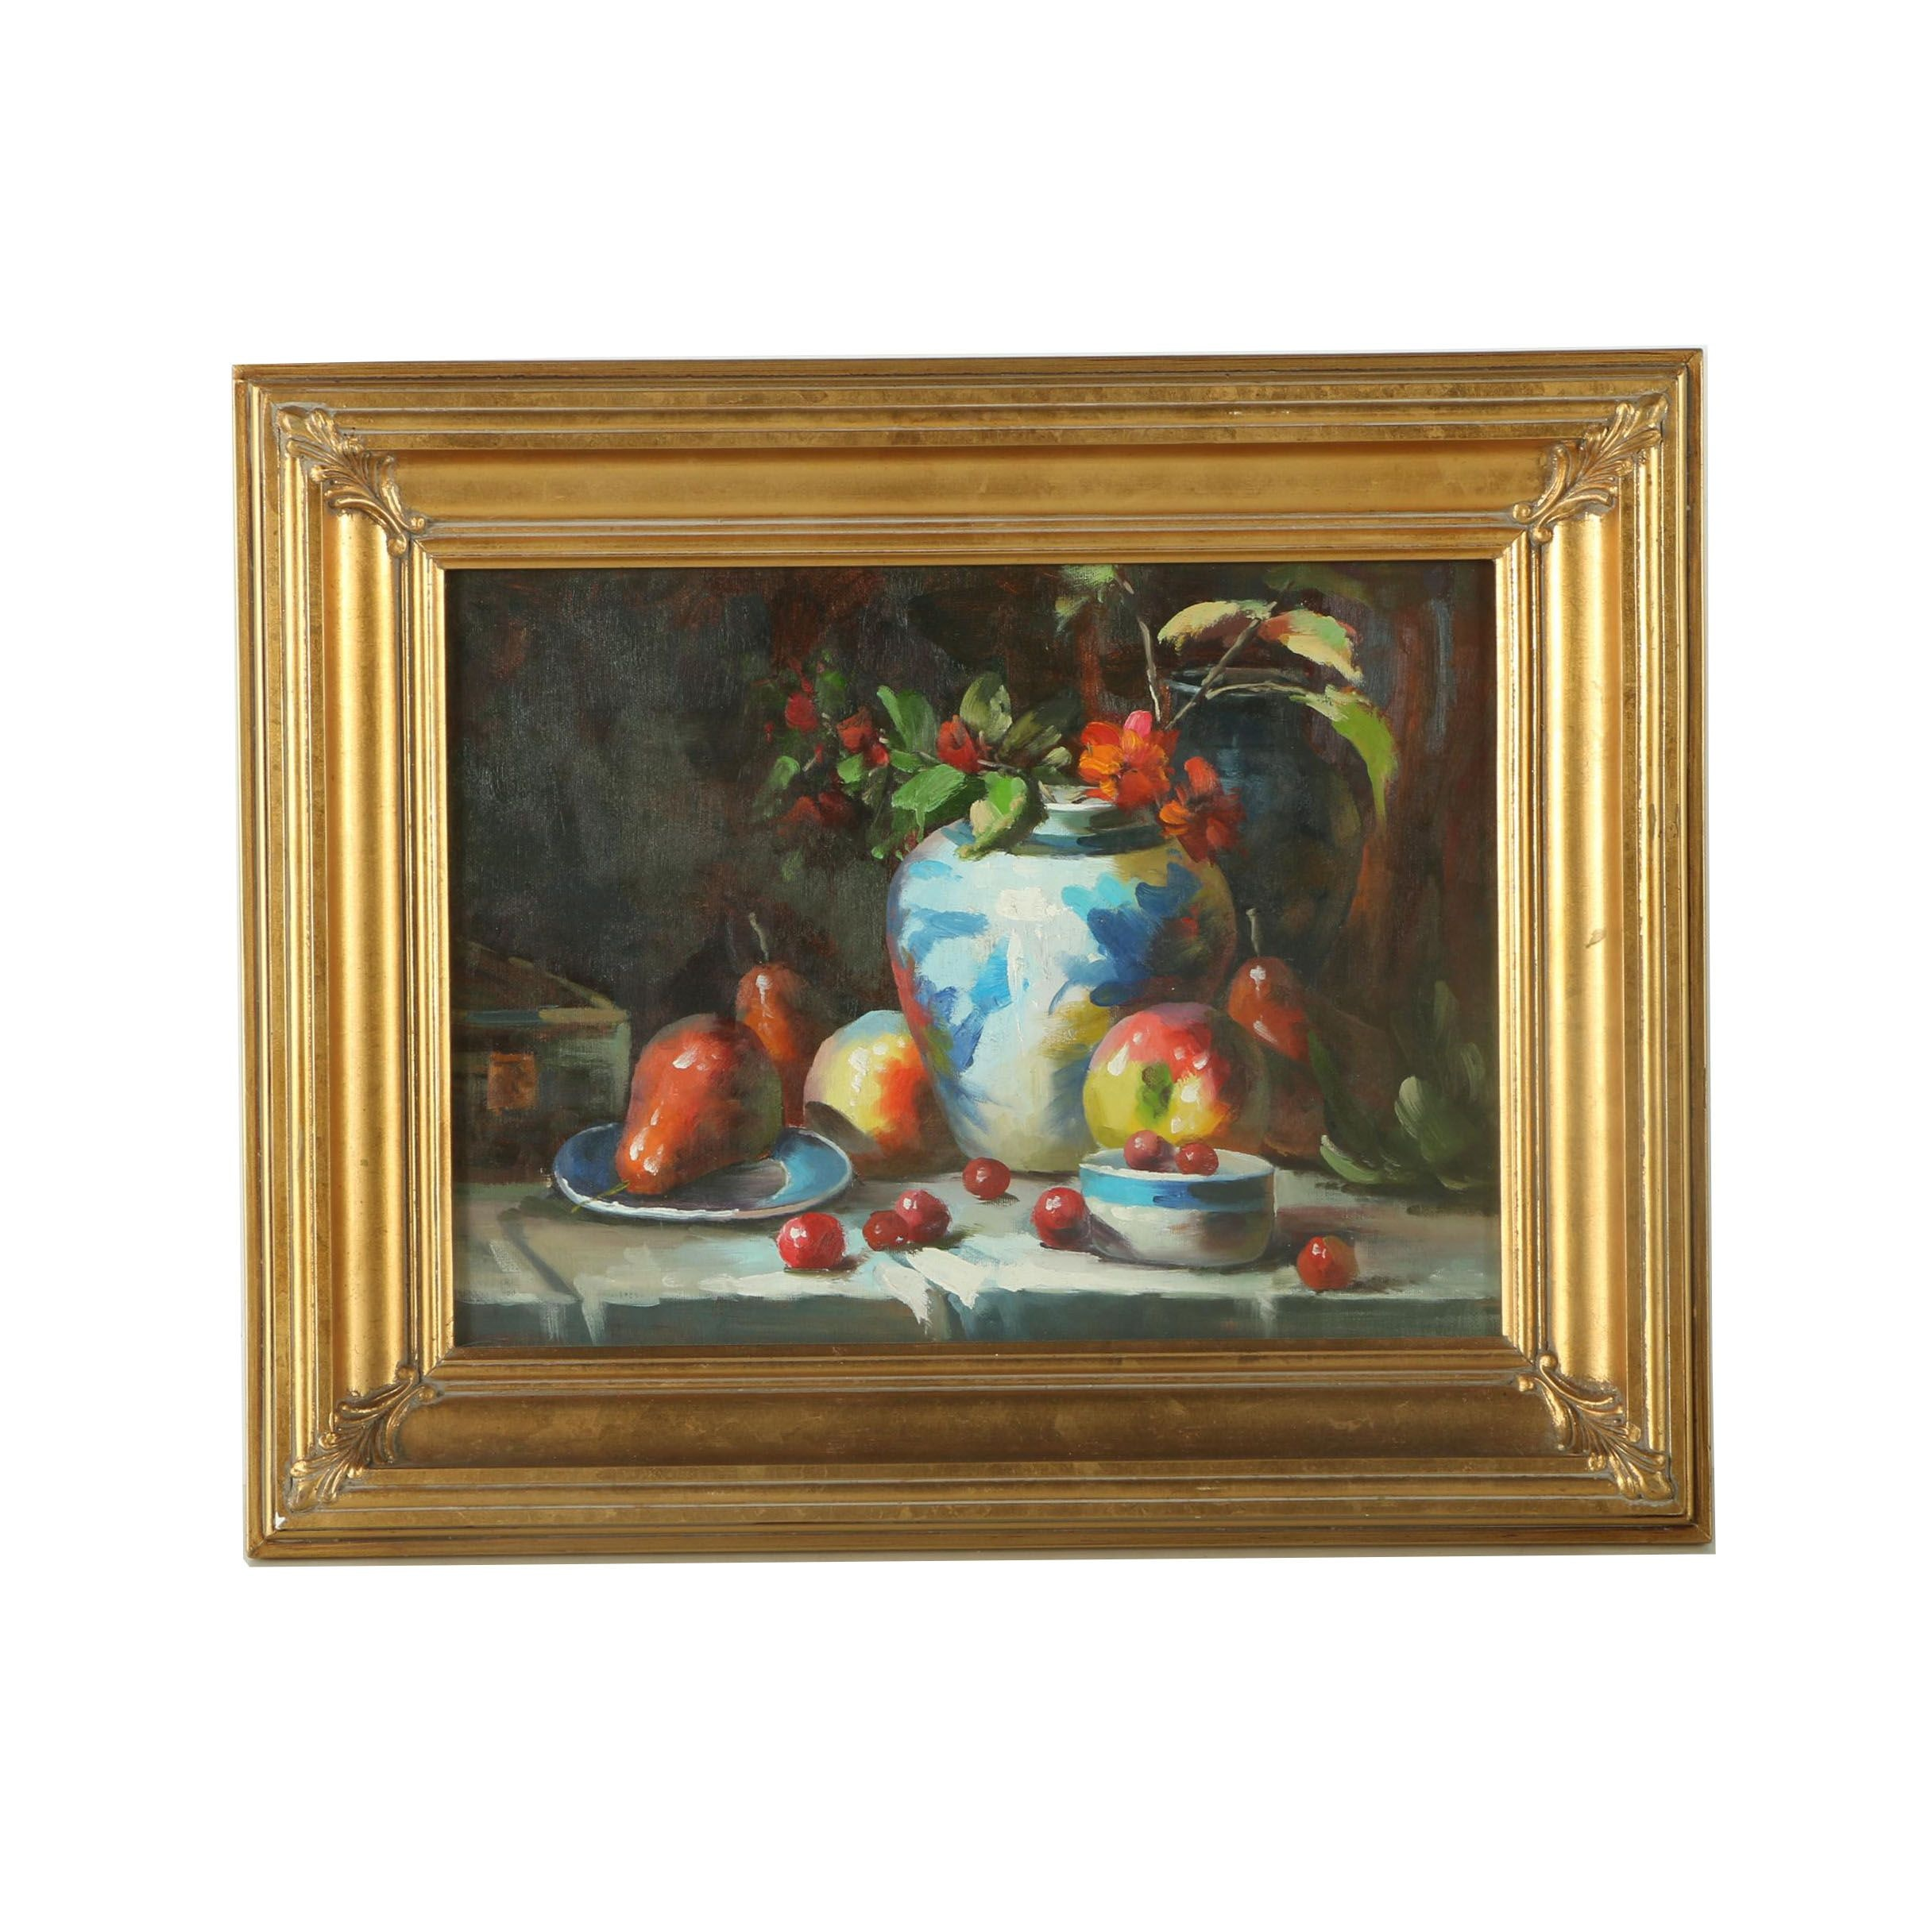 Oil Painting on Canvas of a Still Life